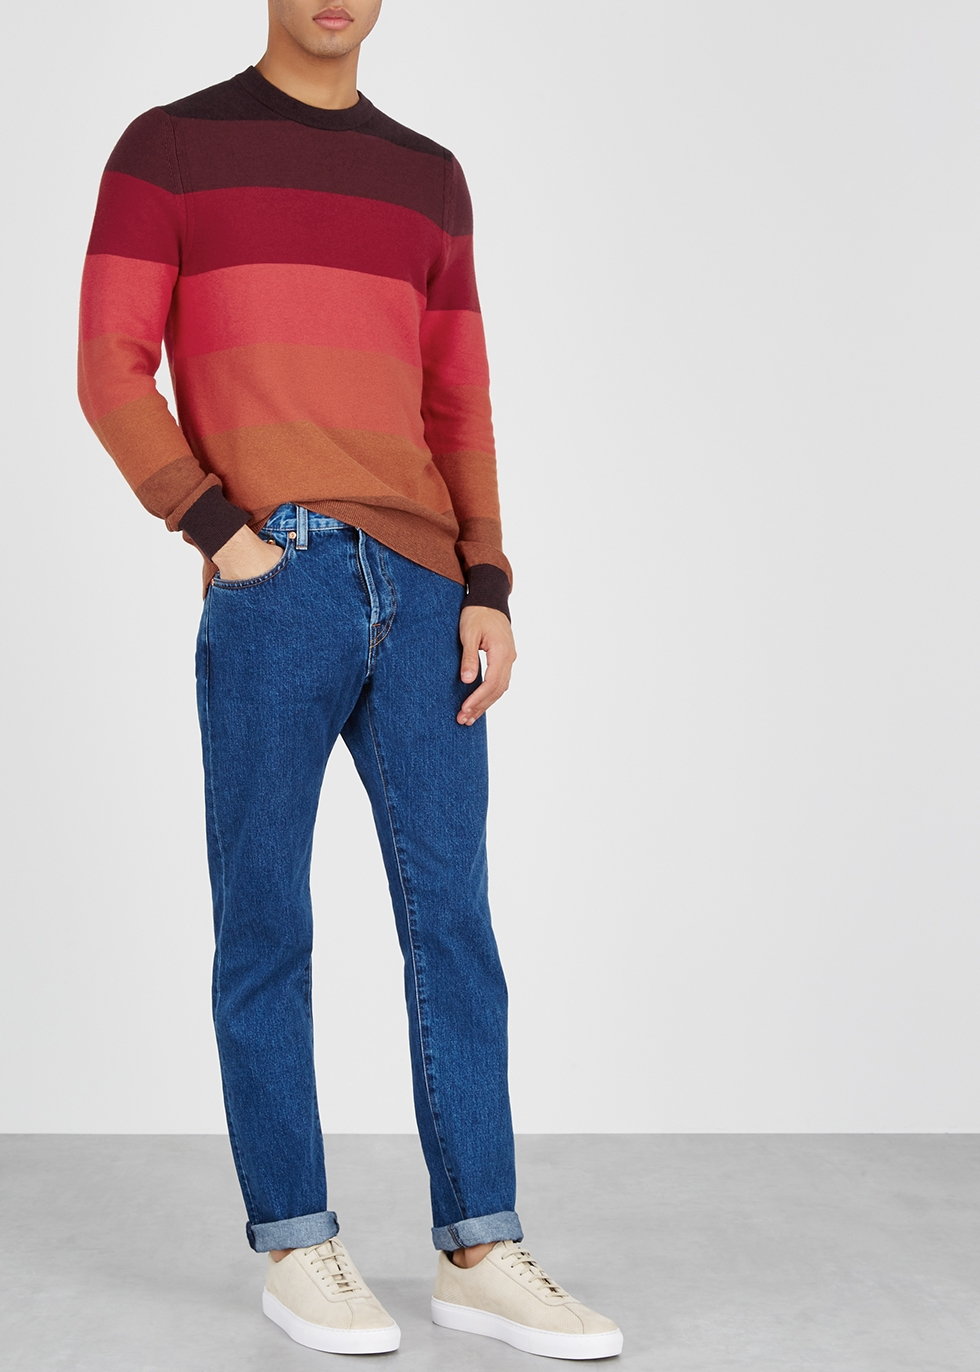 Striped cotton-blend jumper - PS by Paul Smith